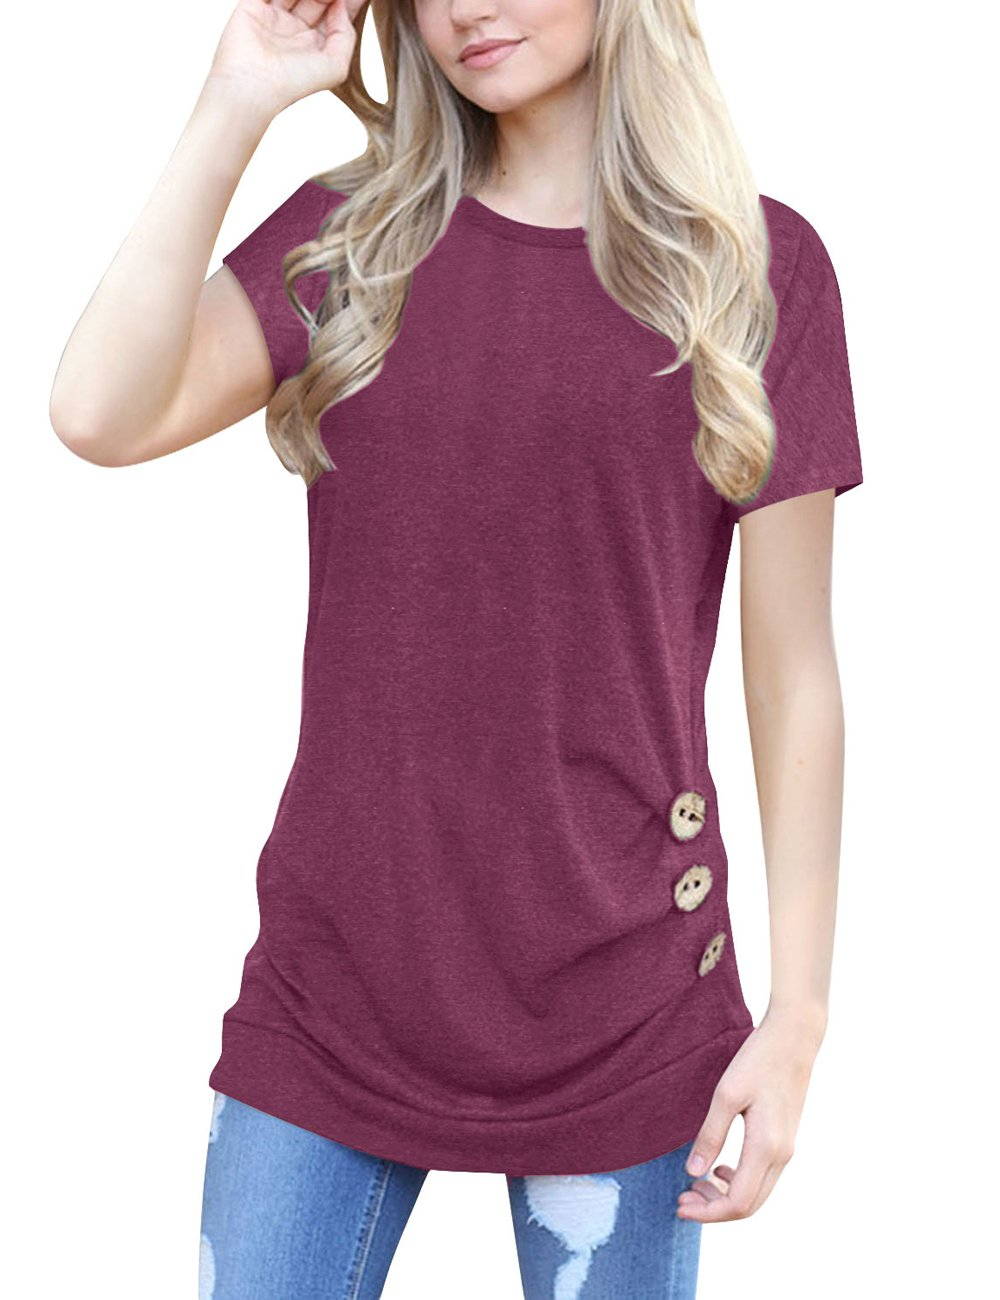 Ladylala Womens Casual Round Neck Short Sleeve T-Shirt Button Trim Solid Color Blouse Tunic Top (X-Large, Wine Red)